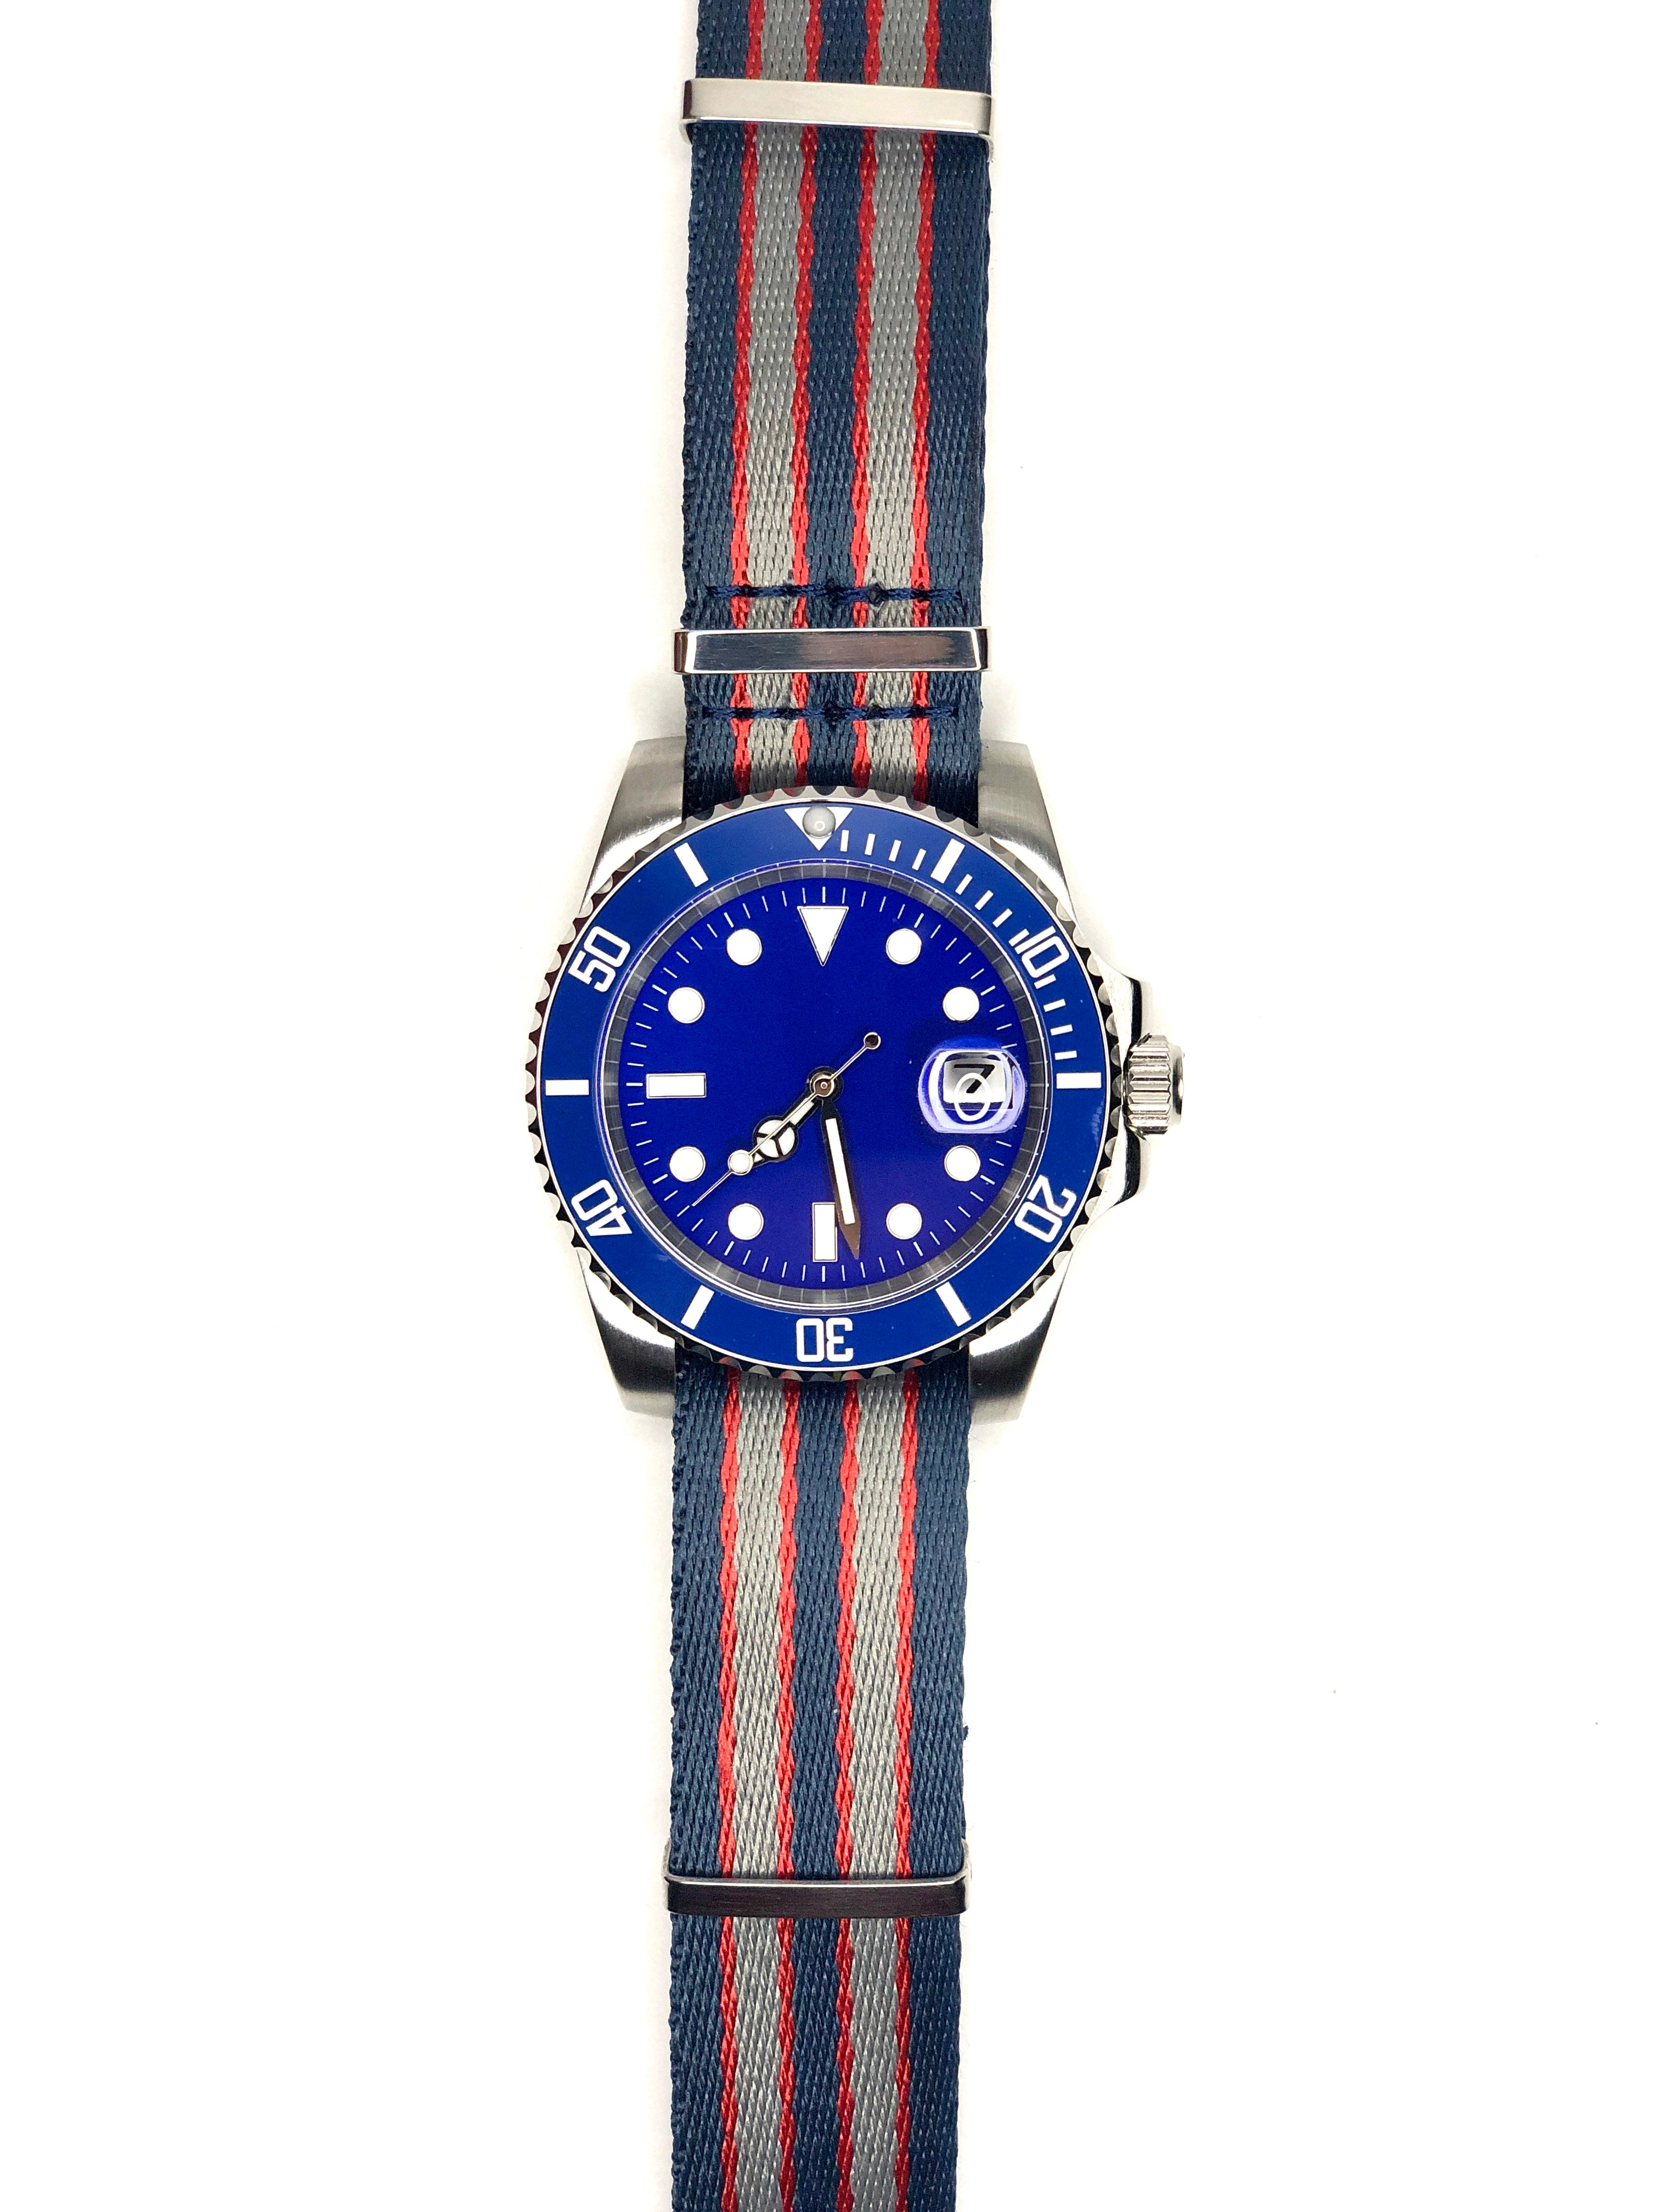 Atlantic - Submariner Homage Watch